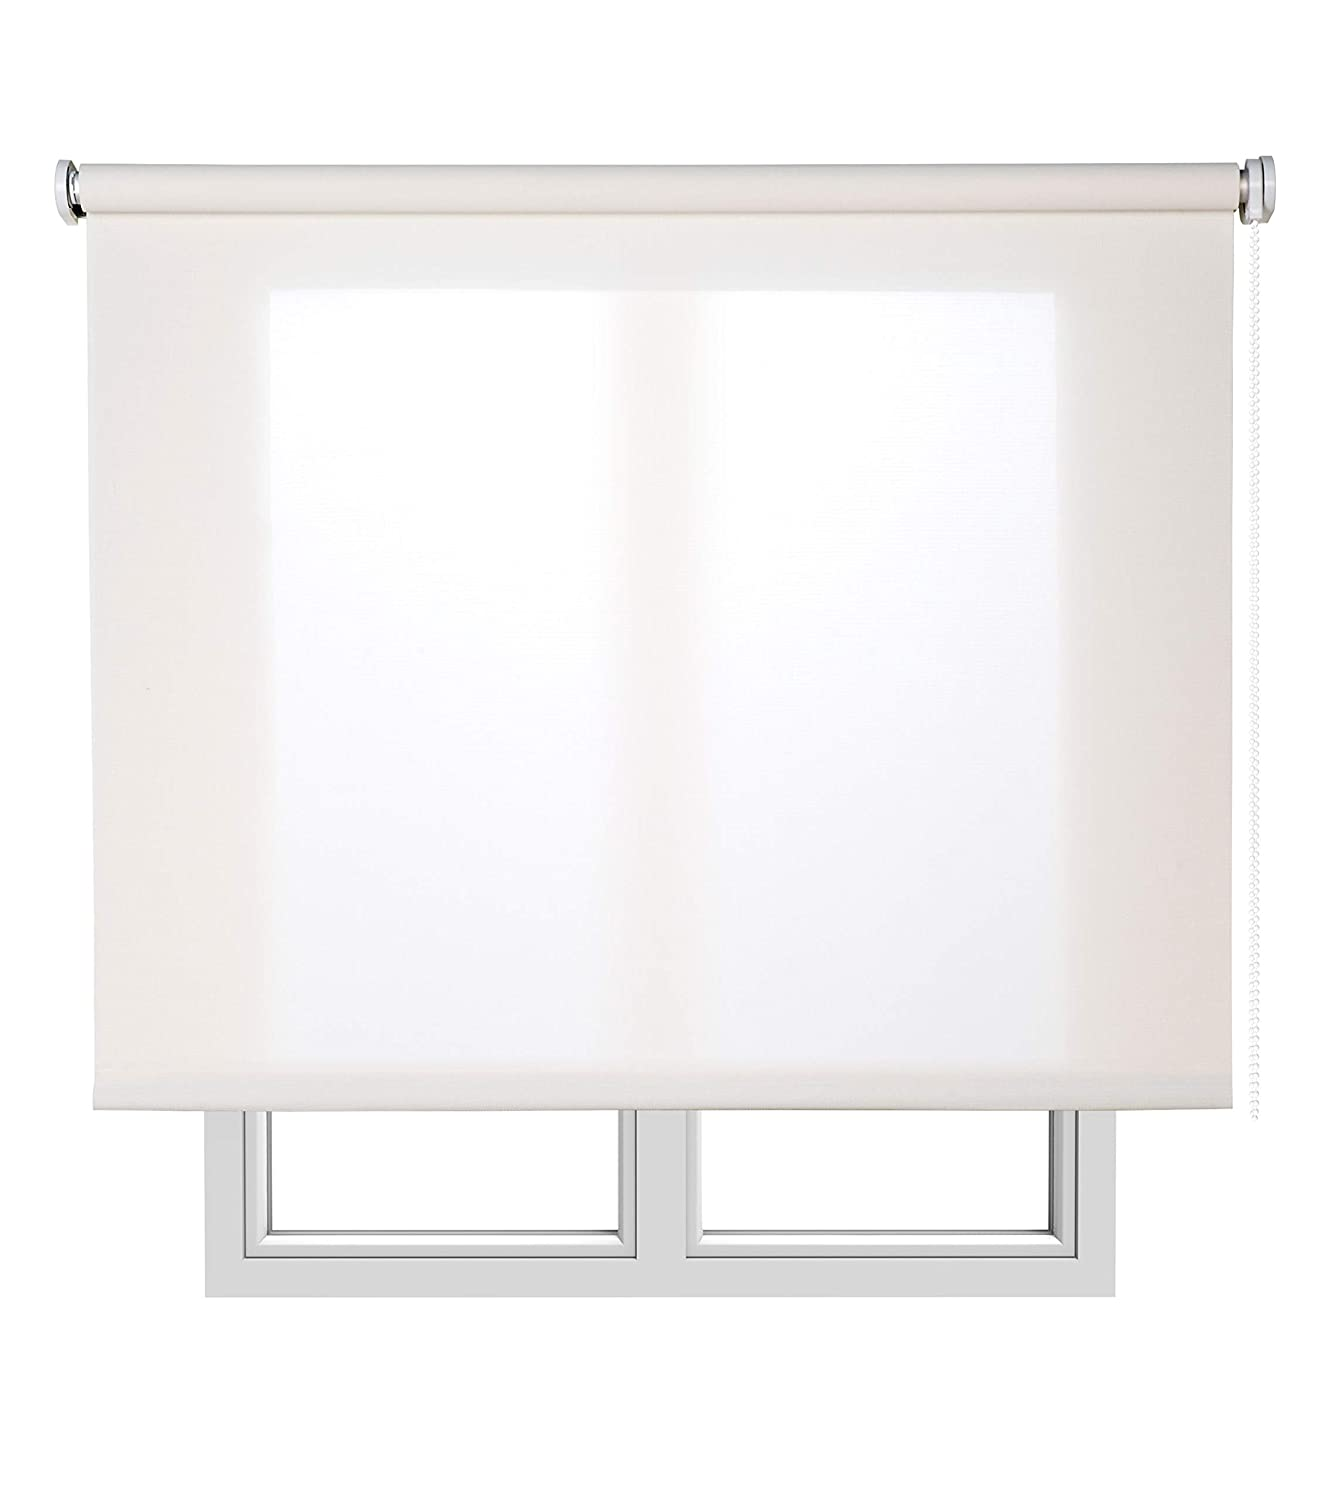 Estores Basic, Stores screen, Blanco, 90x180cm, estores para ventana, persianas enrollables para el interior.: Amazon.es: Hogar